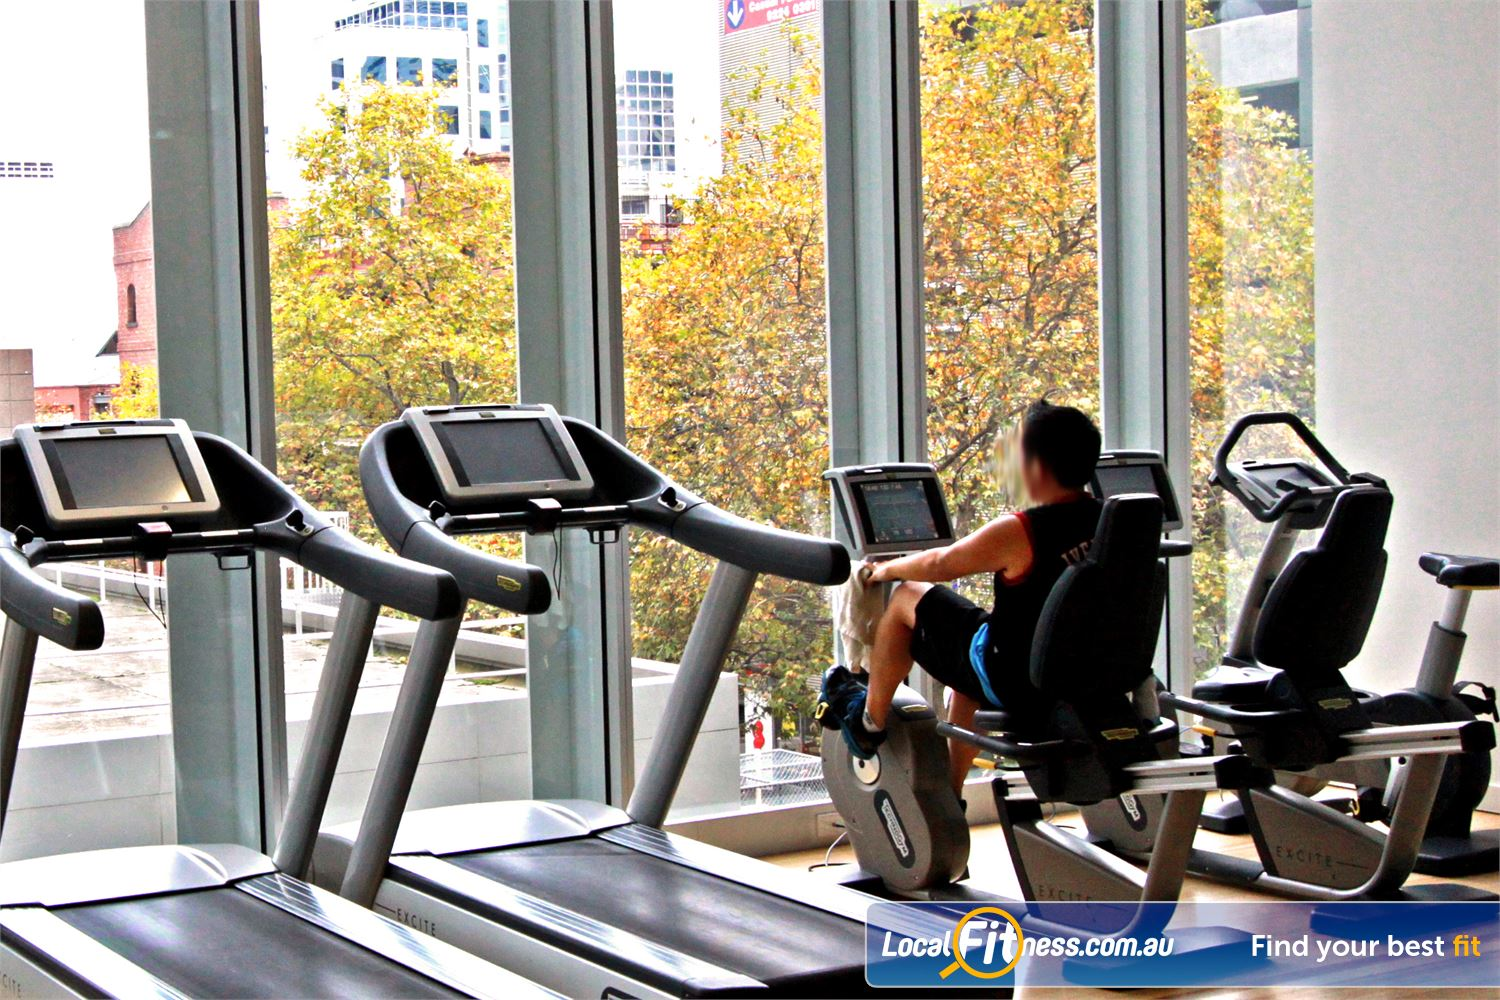 South Pacific Health Clubs Melbourne The open plan cardio area provides scenic views of the Melbourne city streets.